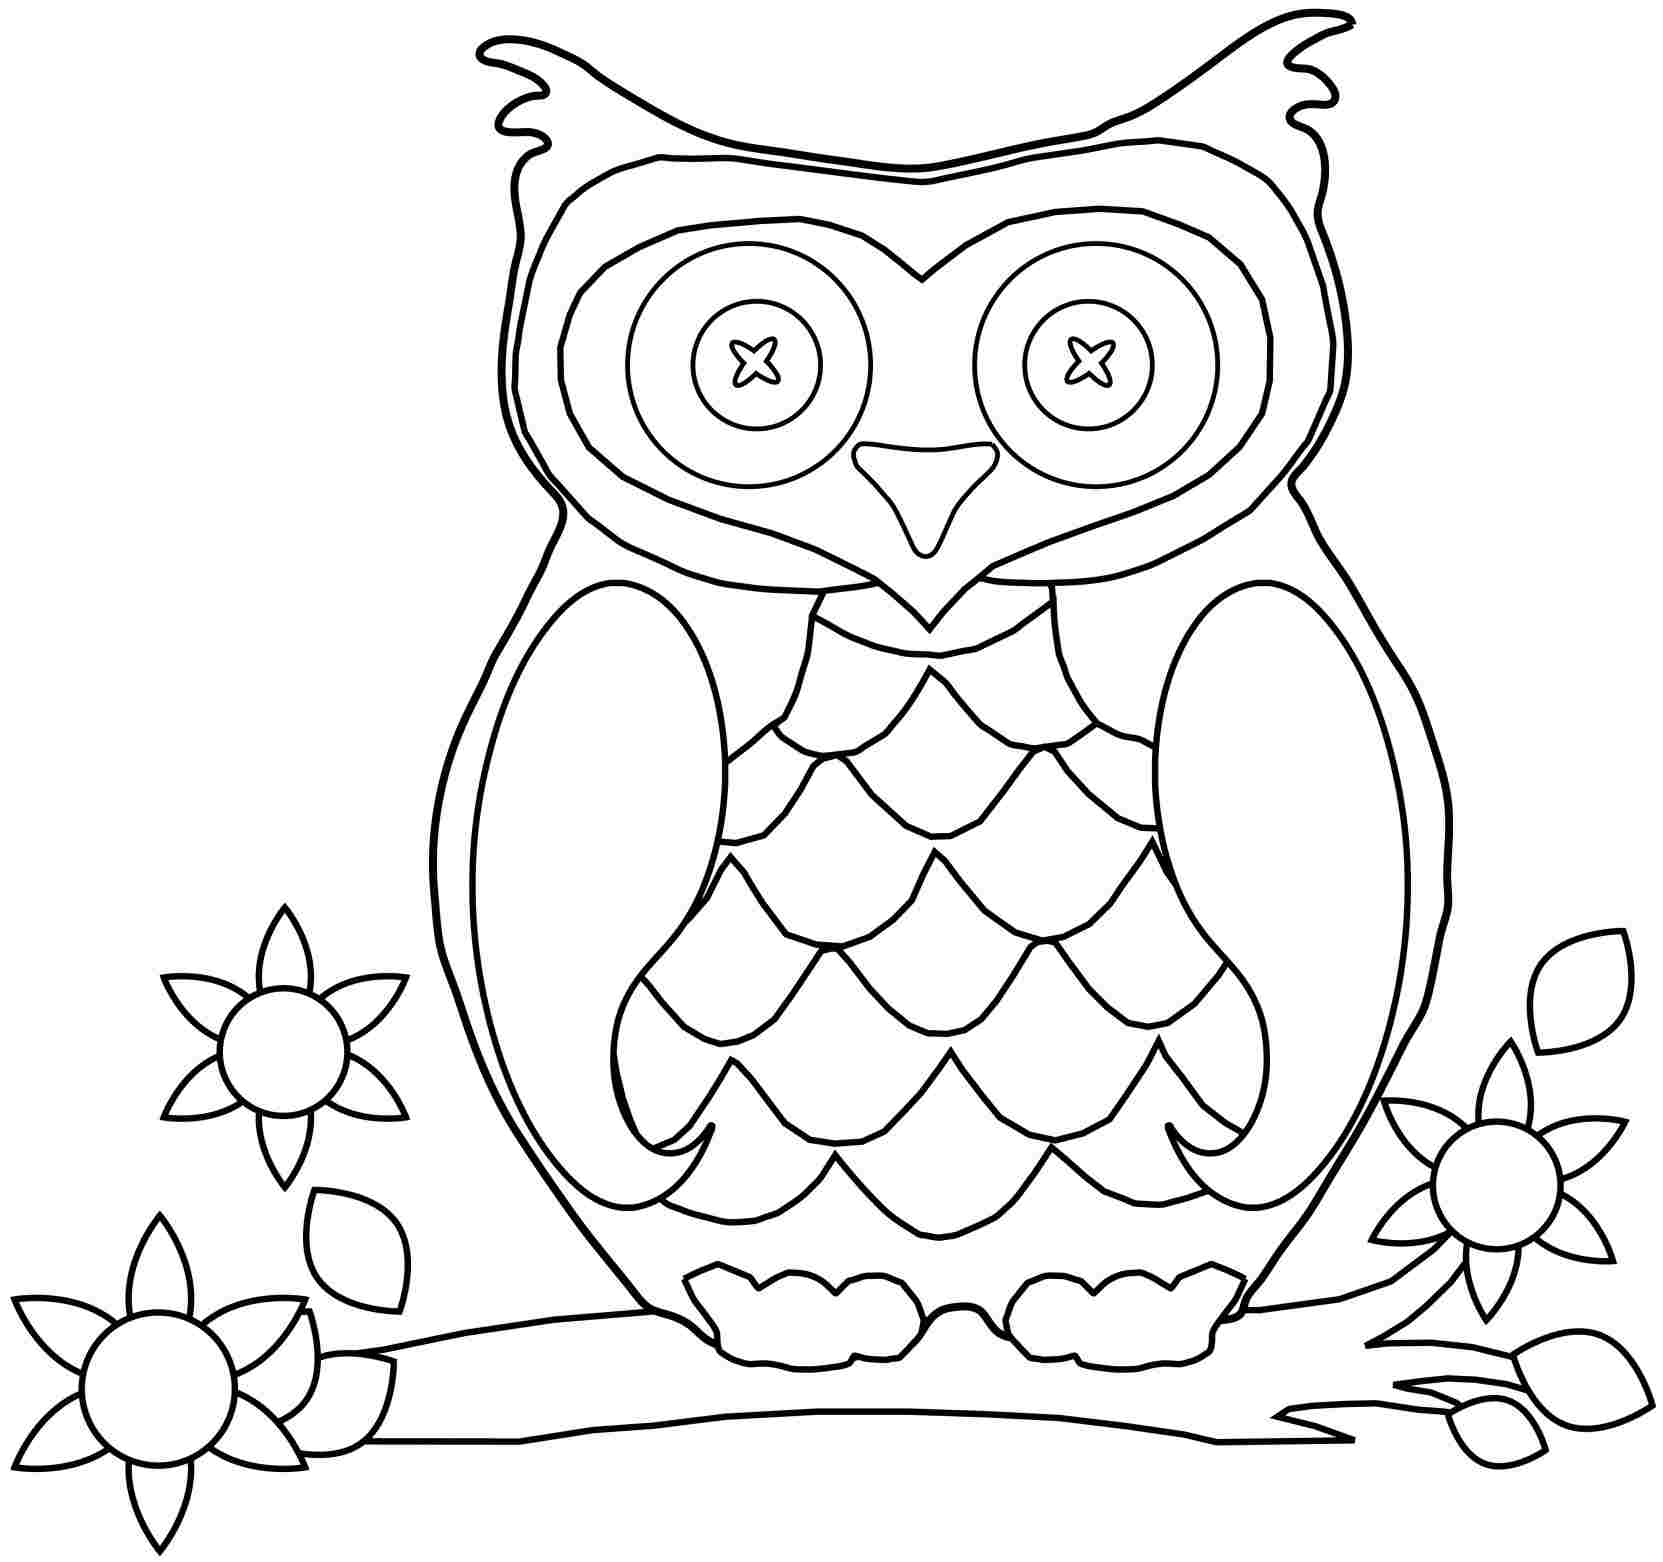 Free Animal Drawing To Print at GetDrawings.com | Free for personal ...